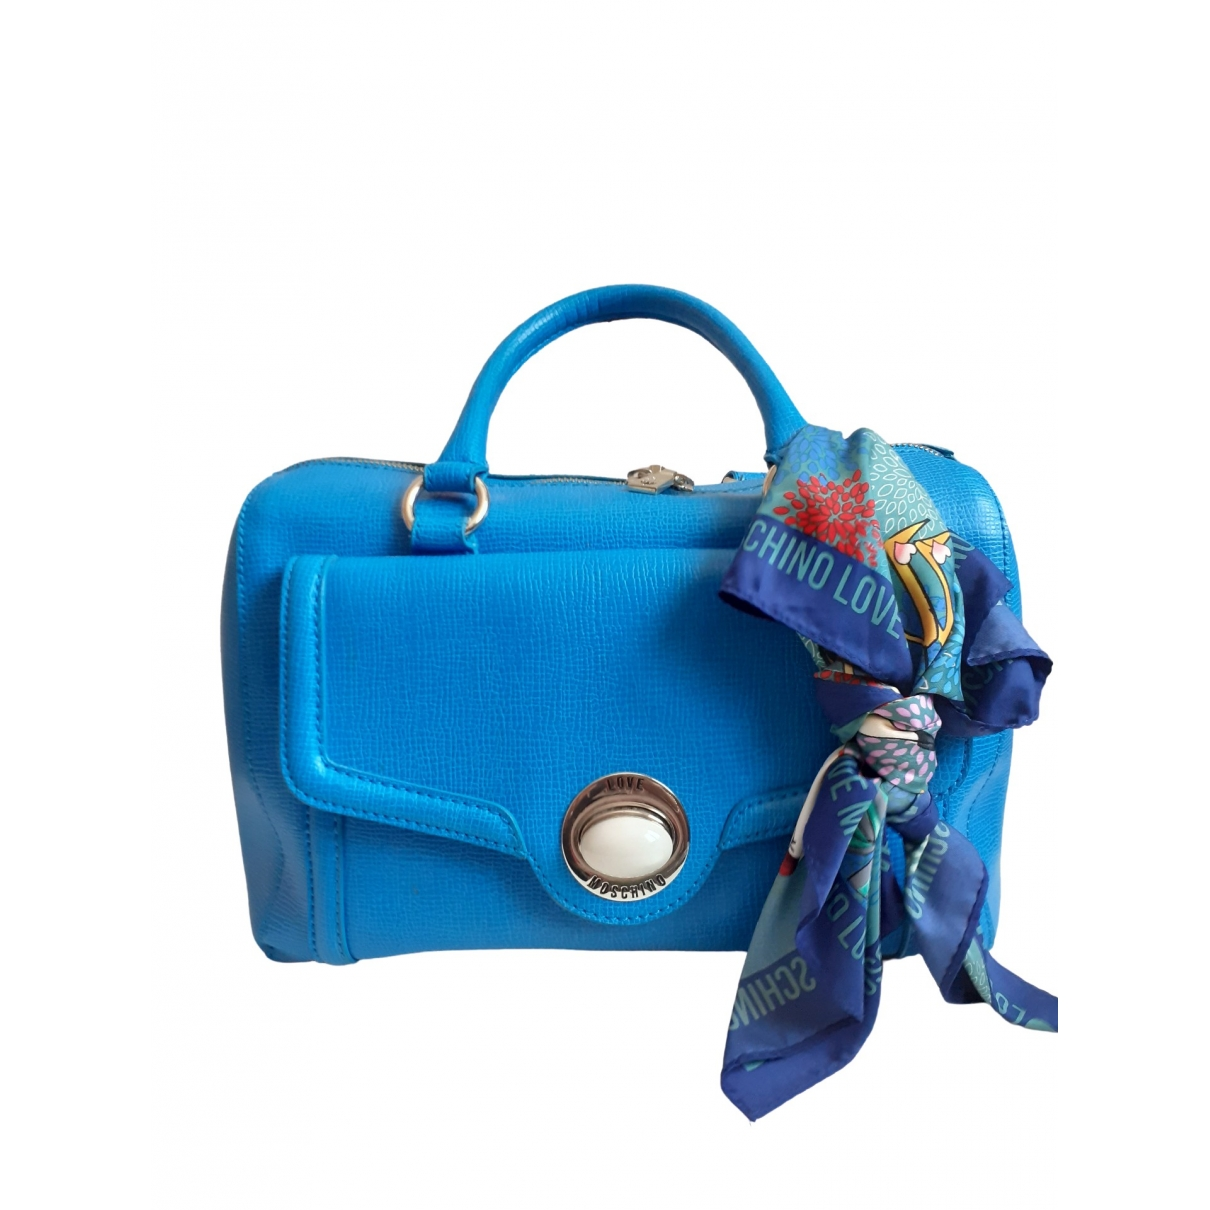 Moschino \N Clutch in  Blau Leder